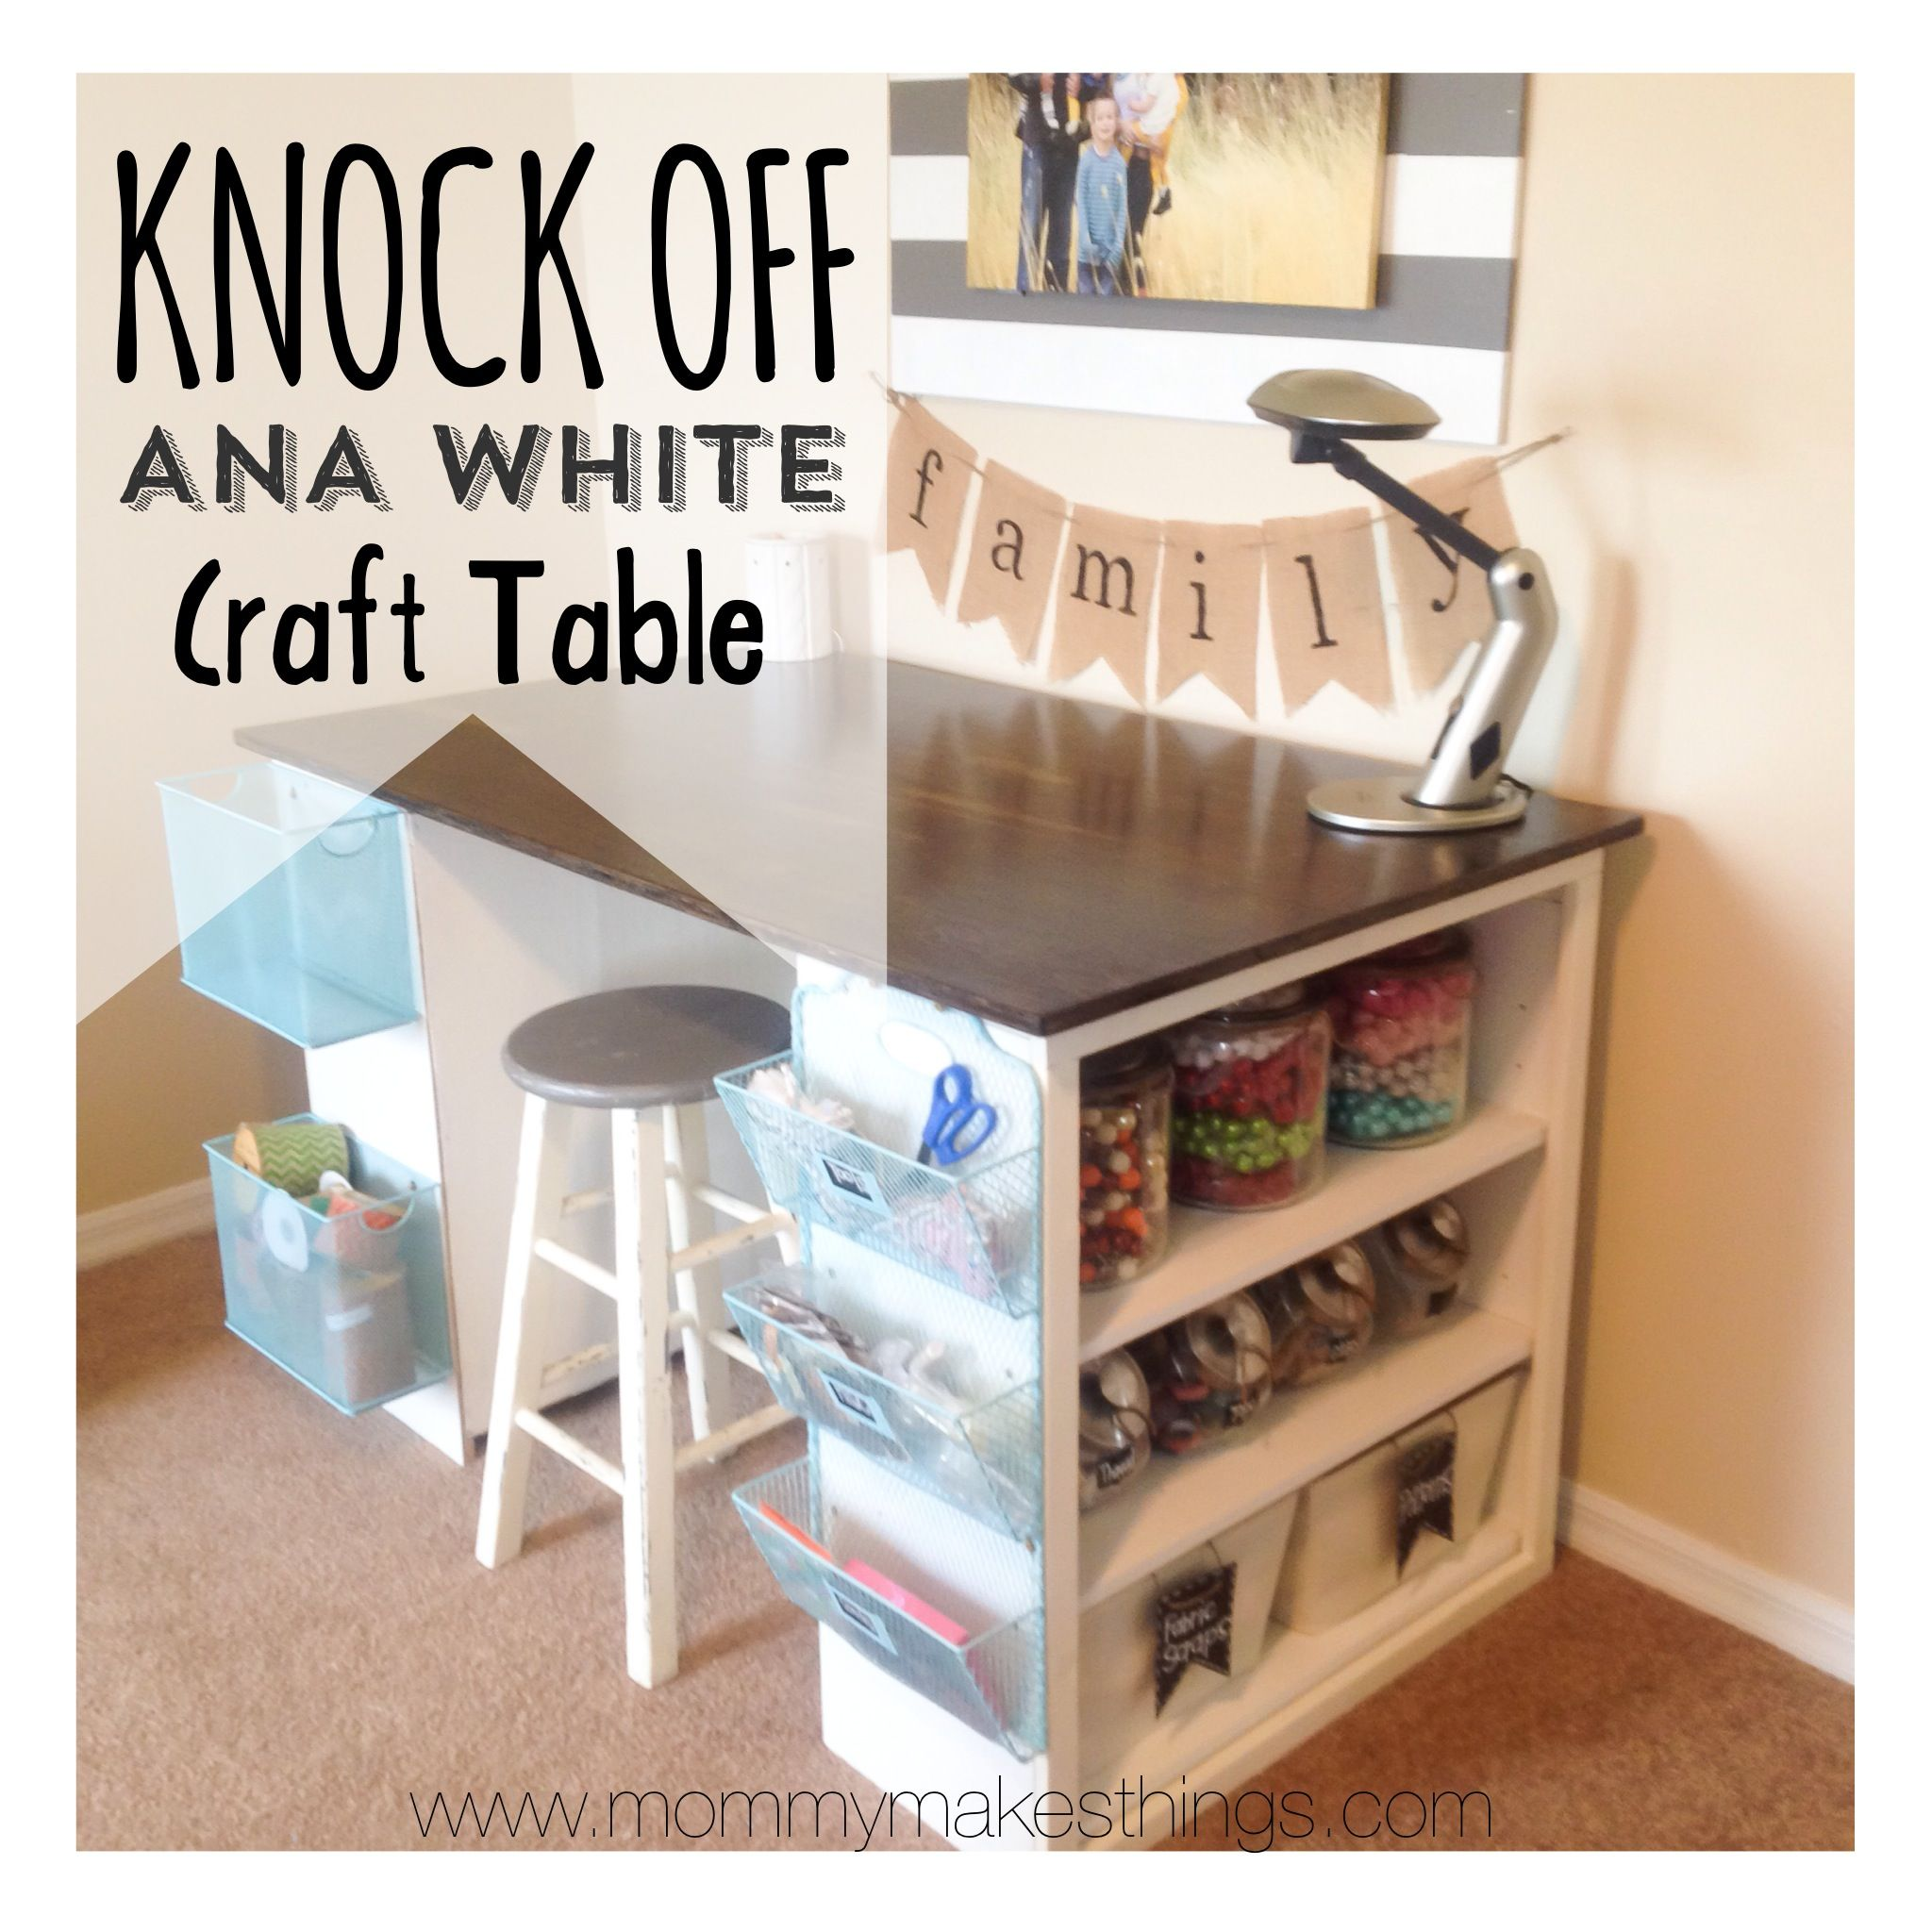 Diy Craft Room Table: DIY Ana White Craft Table Knock Off For Under $75!! By